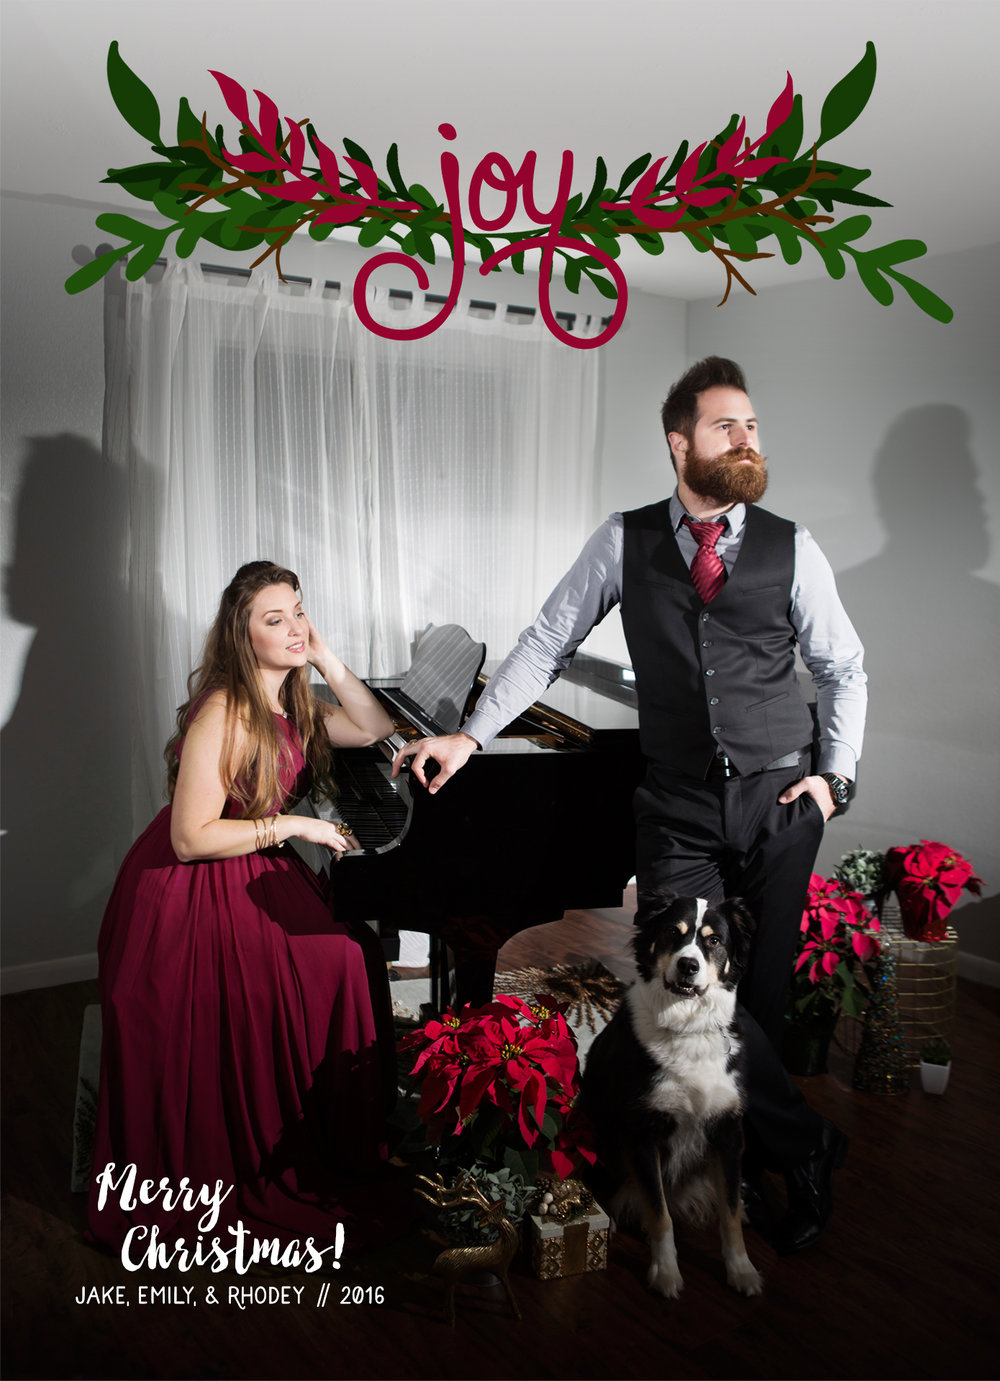 funny christmas photo, formal christmas photo